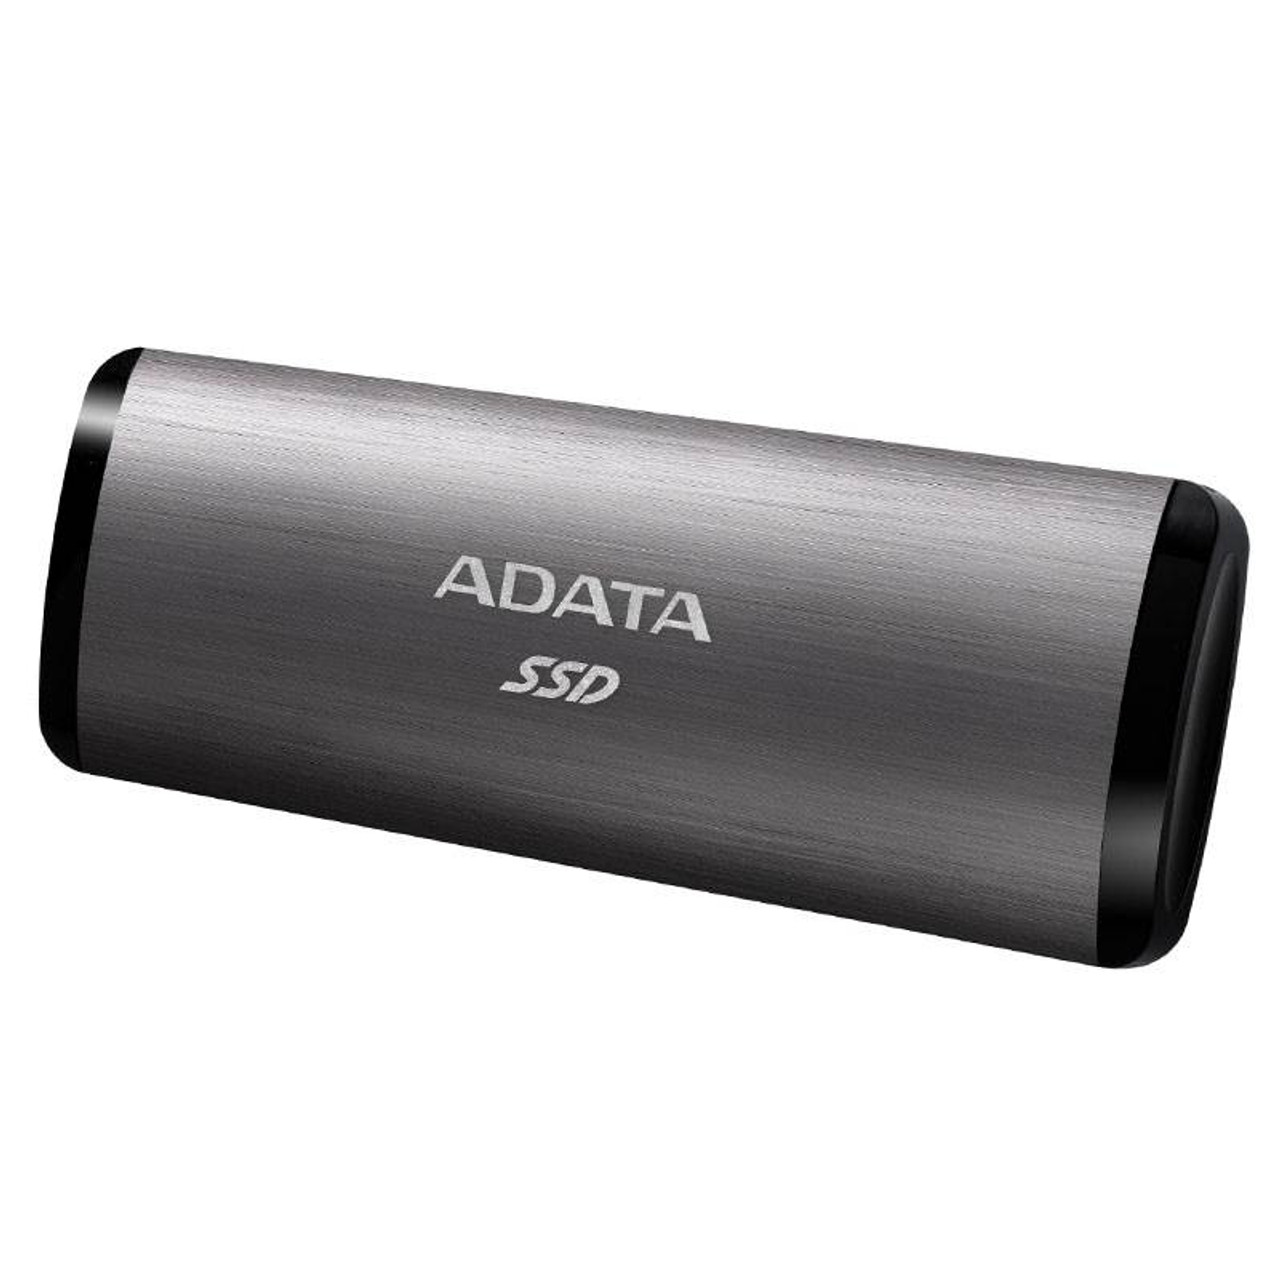 Image for Adata SE760 256GB USB 3.1 Type-C Portable External SSD Hard Drive - Titanium CX Computer Superstore